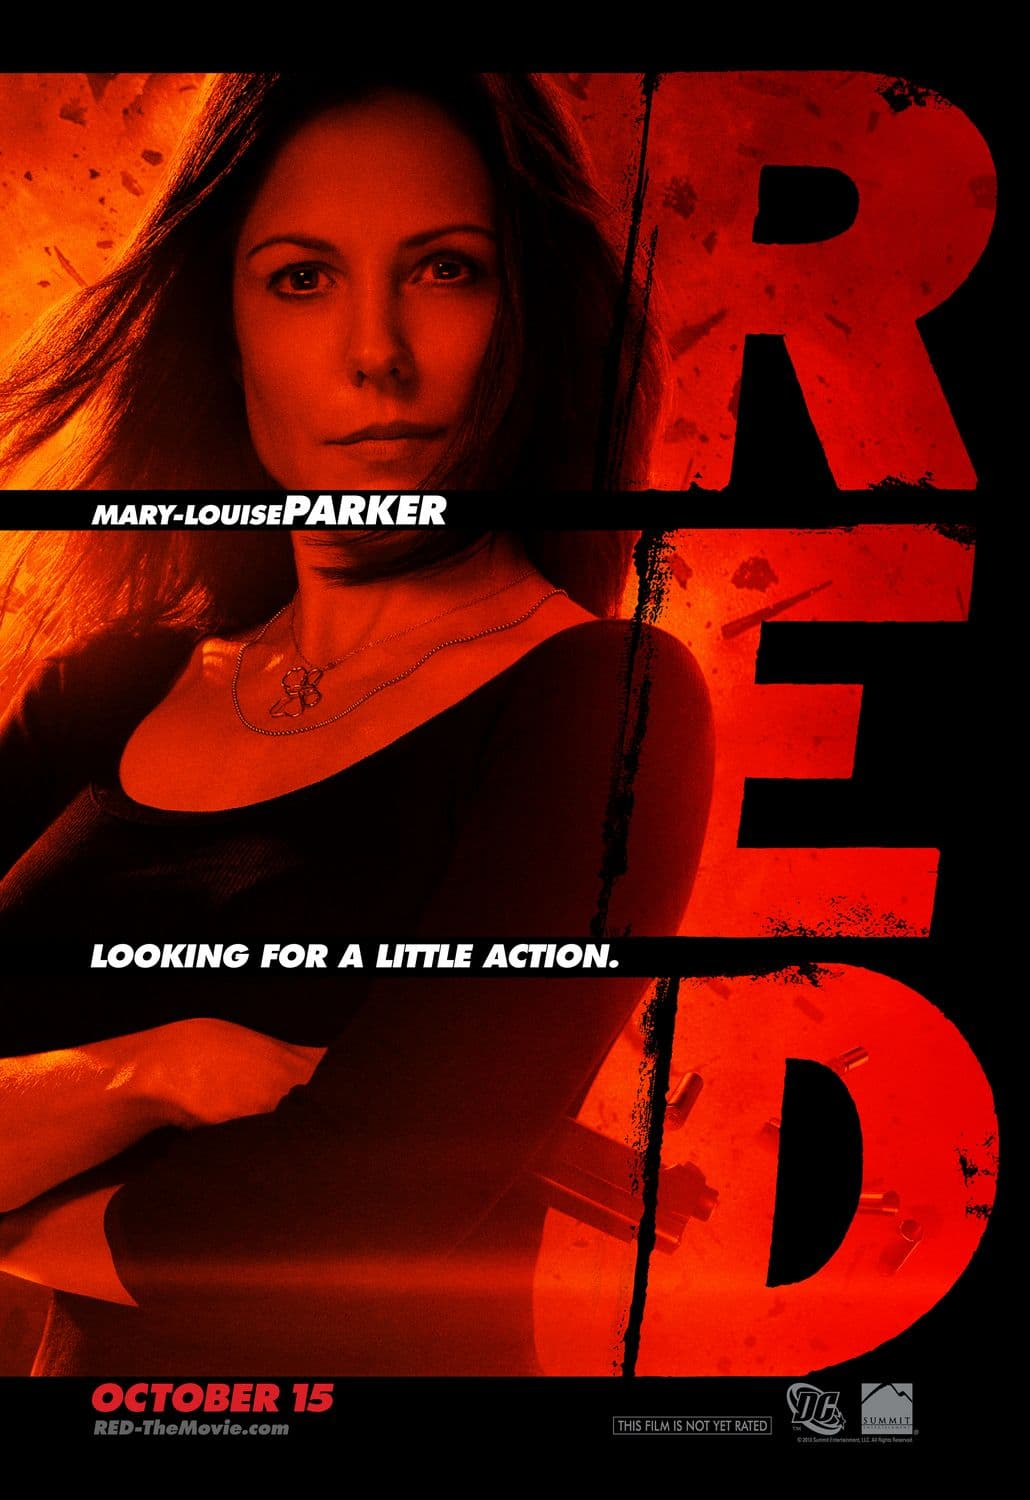 Mary-Louise-Parker-Red-Poster